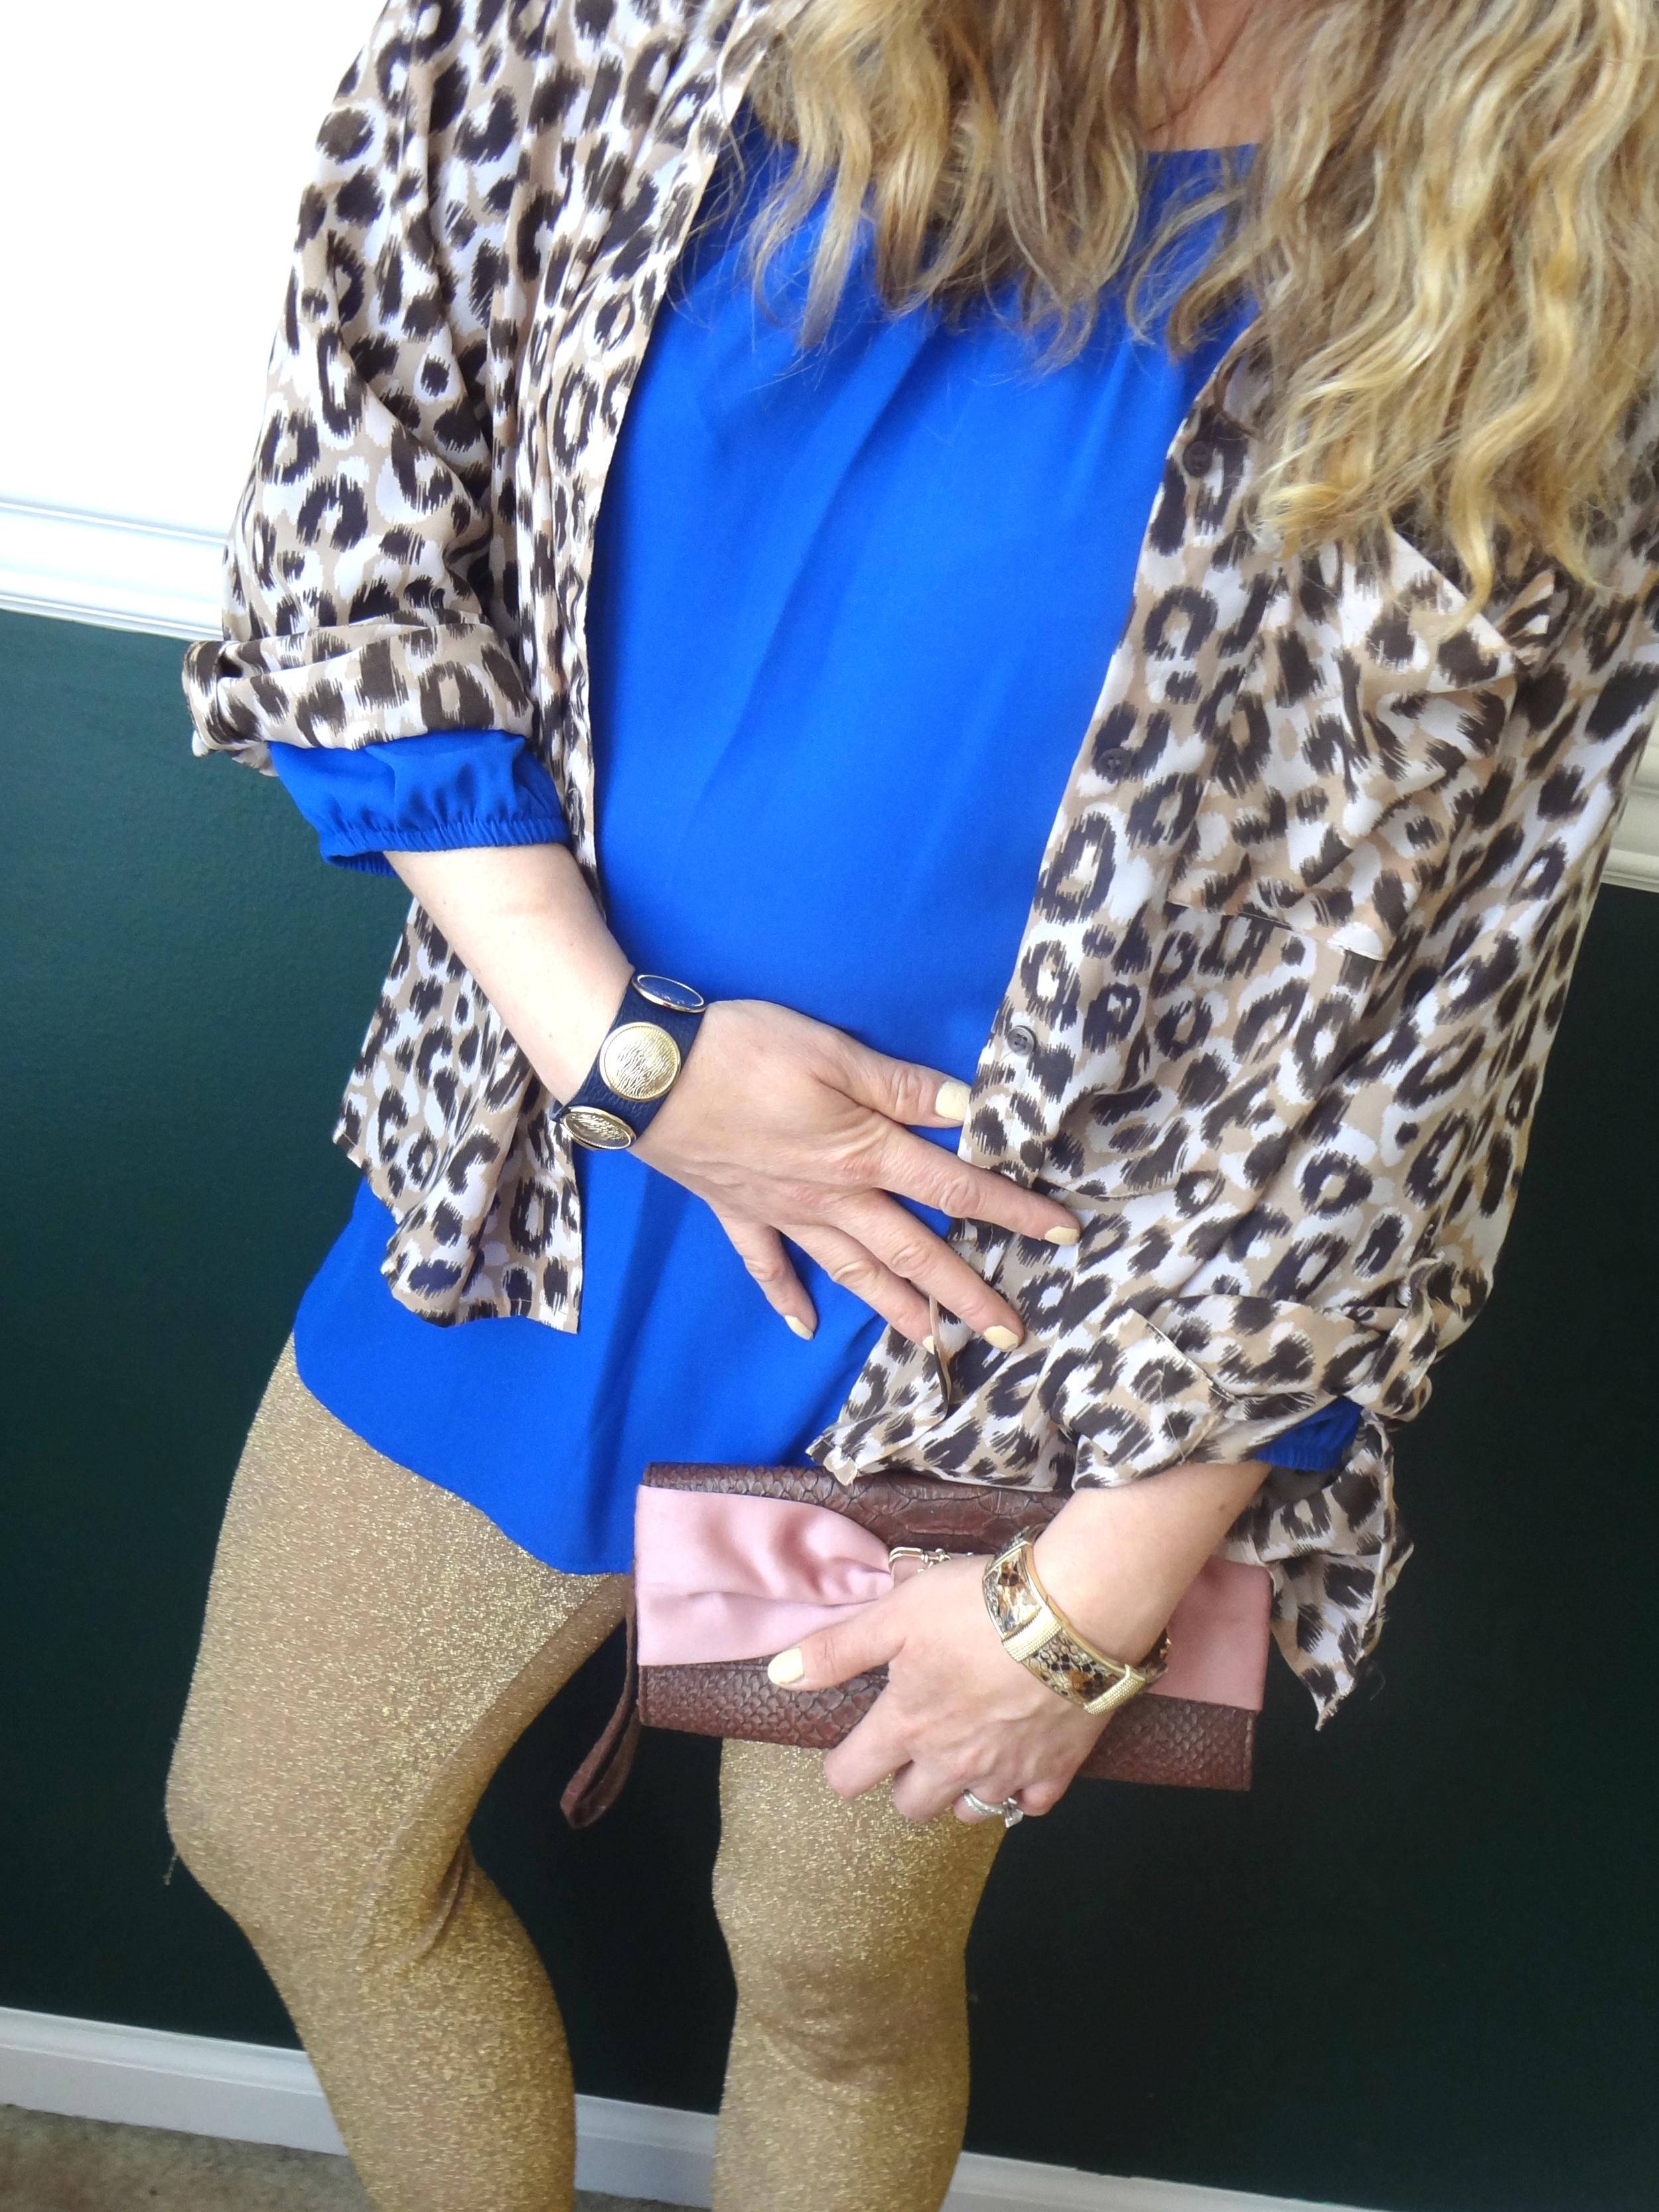 Leopard Print Blouse: H&M (t his one would work too ), Cobalt Blue Tunic: Mod Cloth ( this one would look great over the blouse ) , Leggins: H&M ( i love these too ), Jewelery: Balenciaga ( similar here ) Palm Beach, Clutch: Liz Clairbone (old), Shoes: Mossimo ( these would work well too)